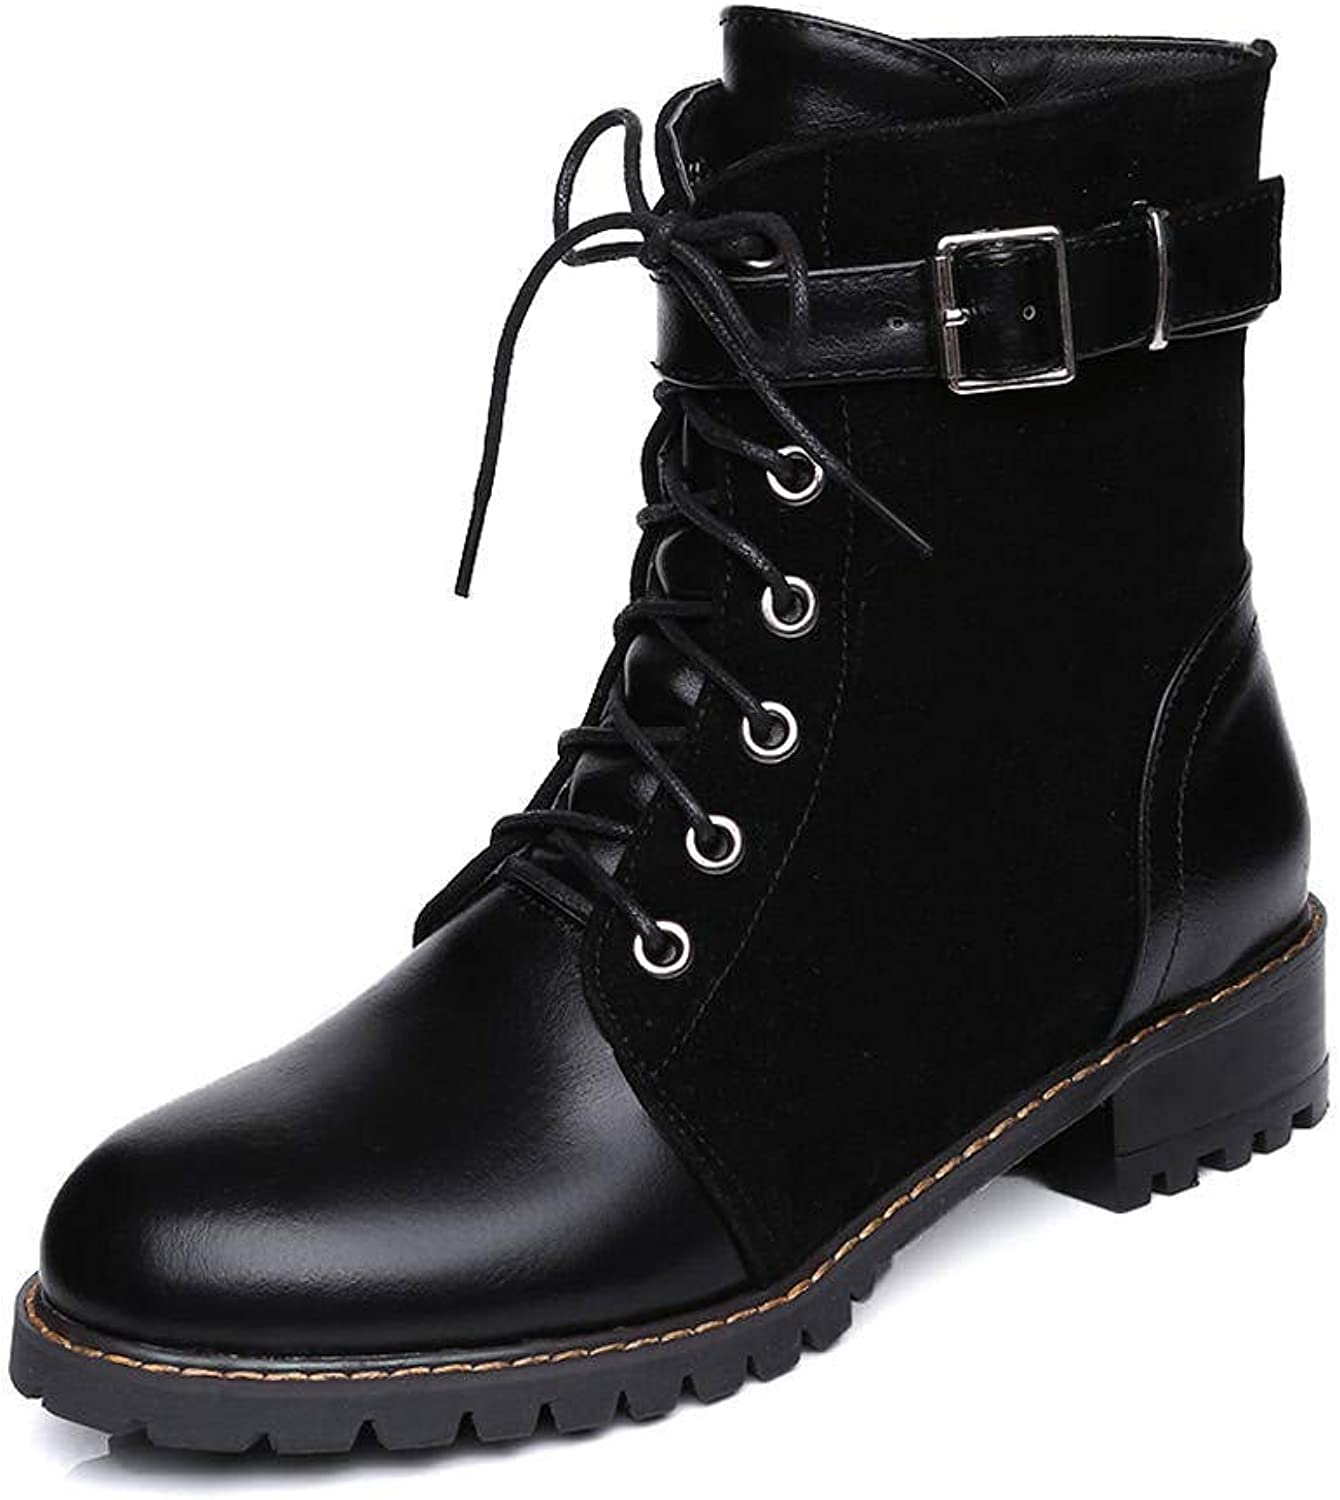 Women's Lace-up Fashion Solid color Round Toe Low Heel Boots(Black-4 M US)